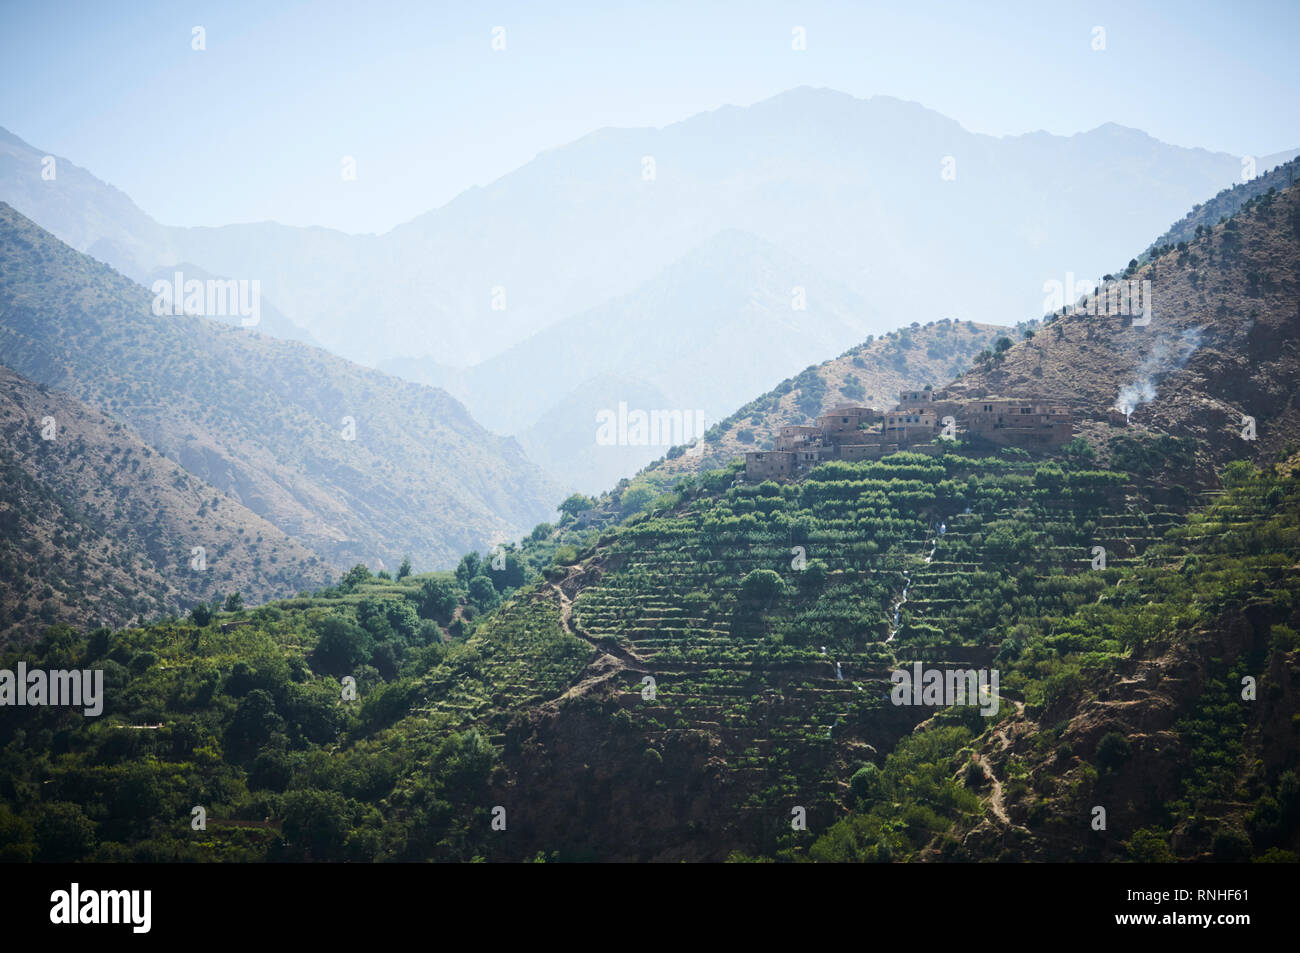 The mountains of Setti Fatma, of the Atlas mountains, Morocco, North Africa. Stock Photo